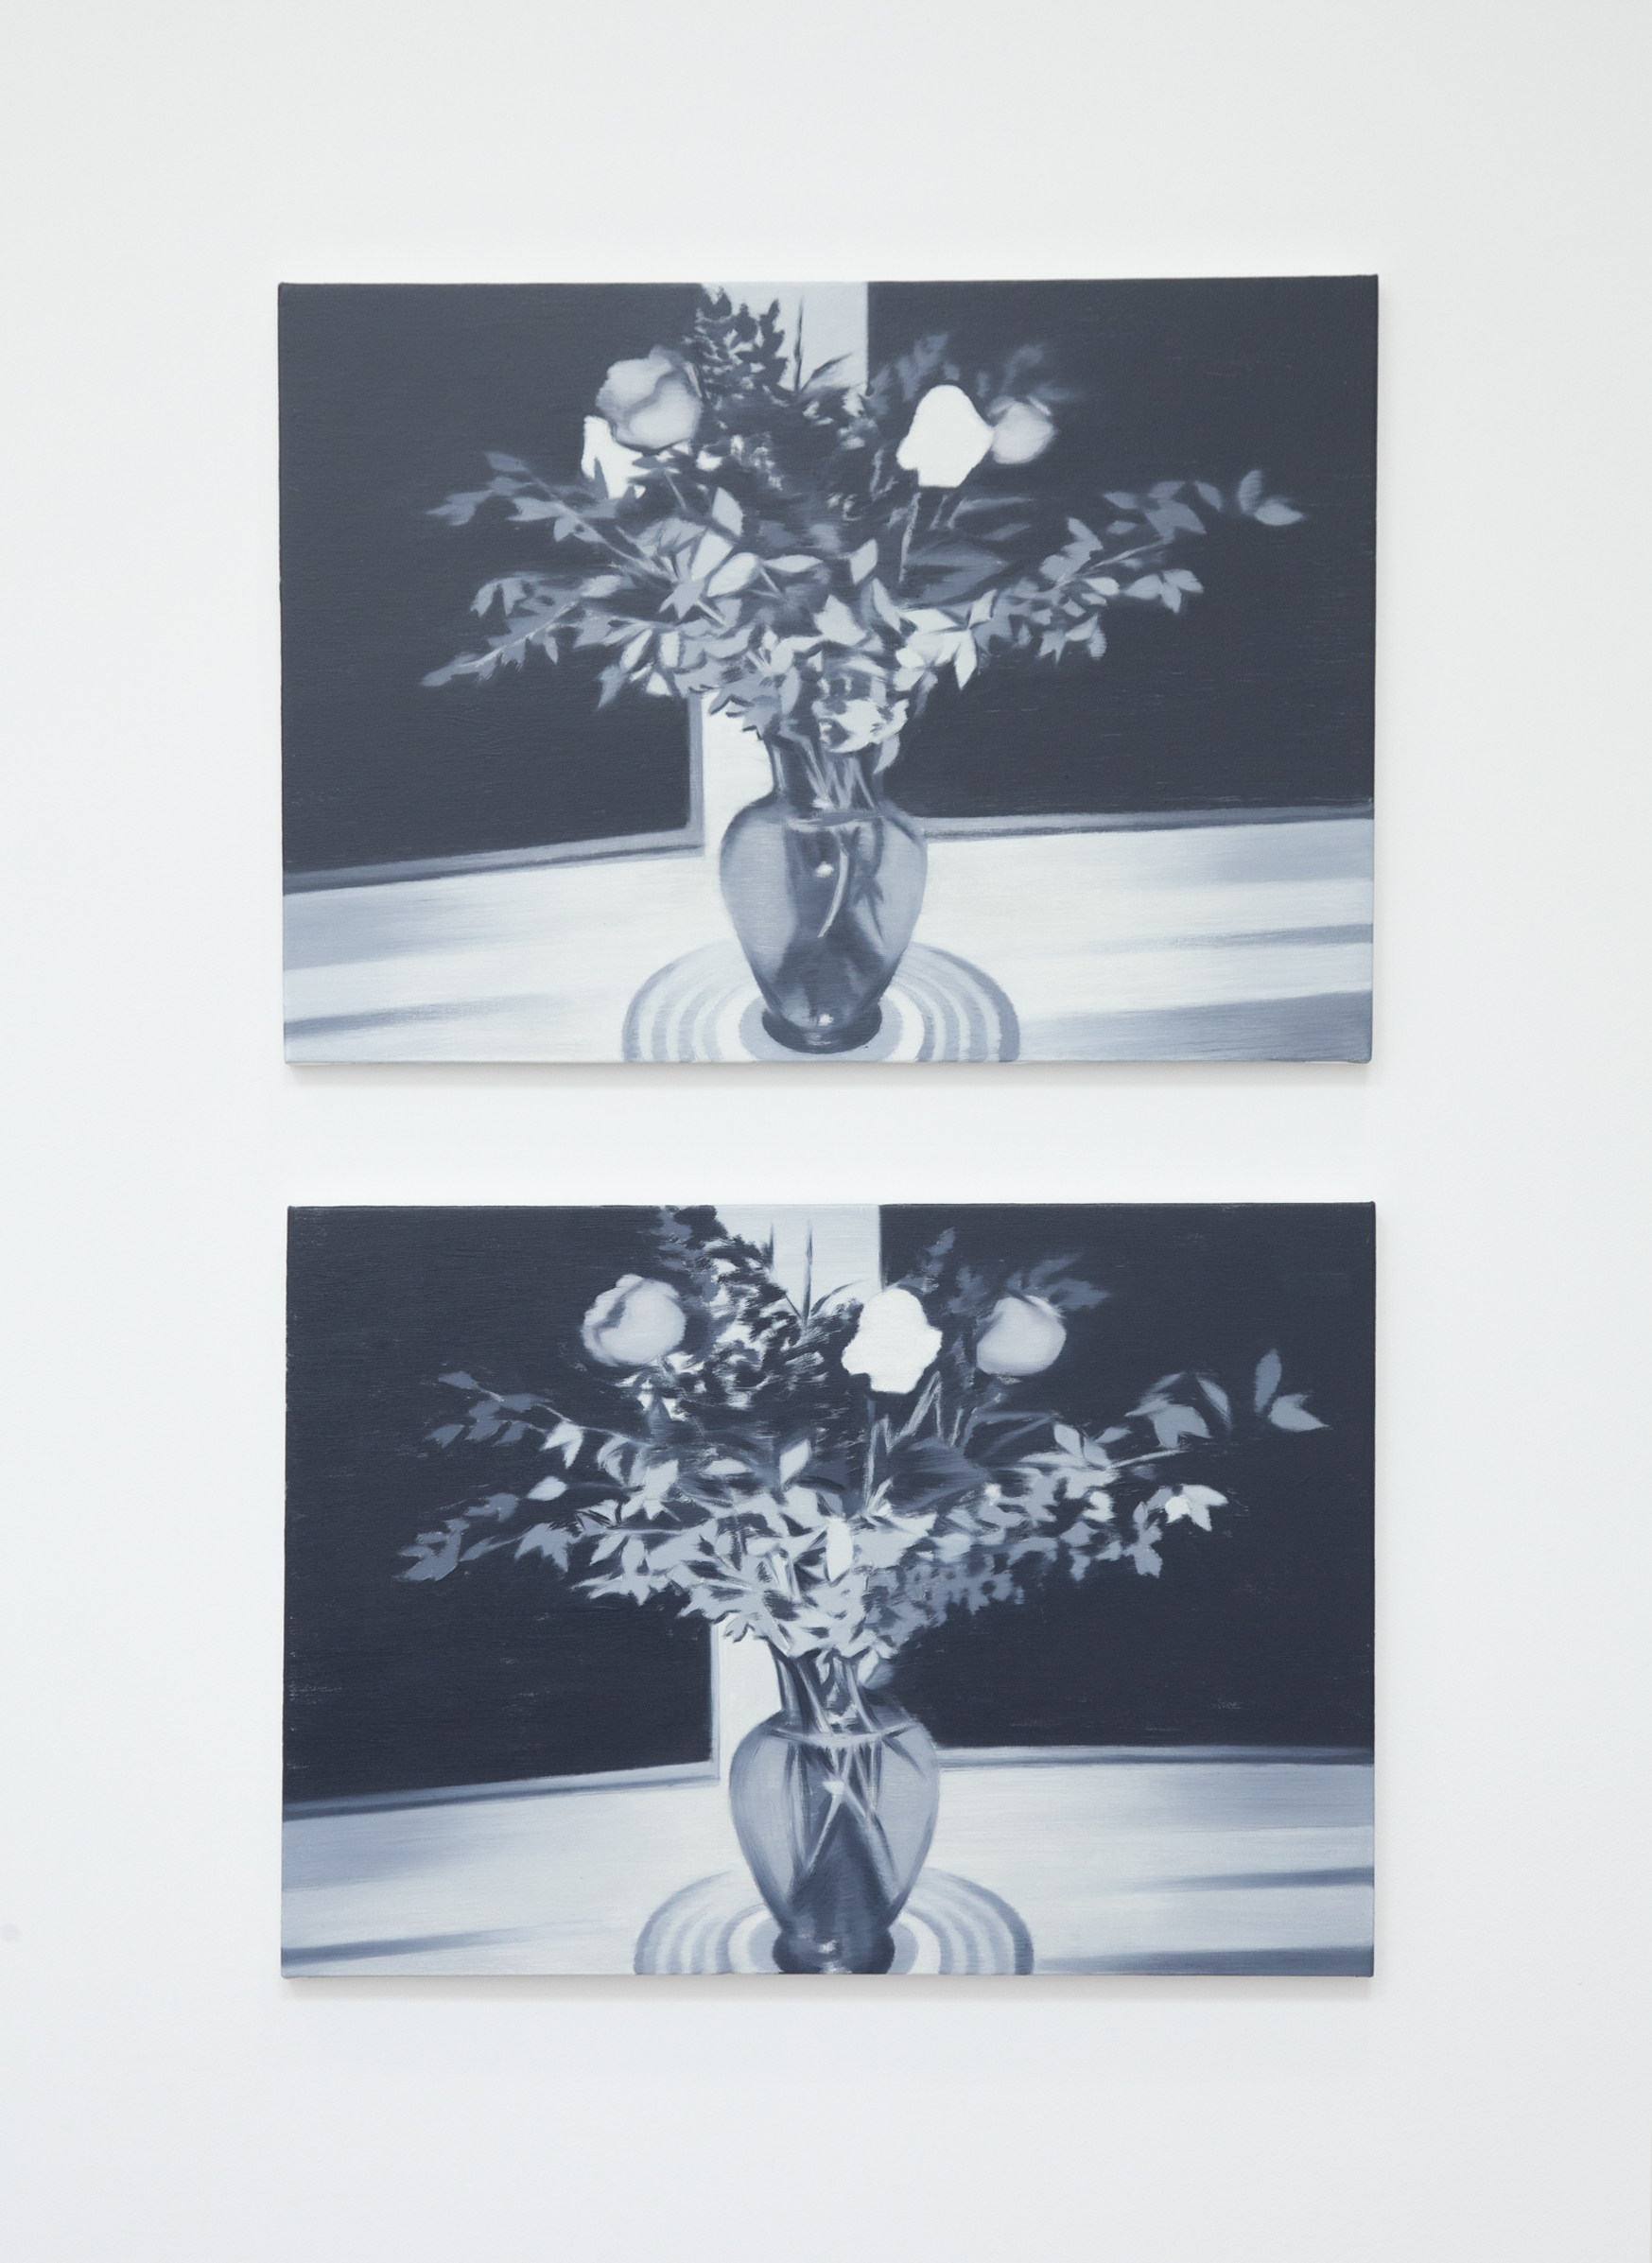 NICK OSTOFF  Bouquet (grisaille 1)  and  Bouquet (grisaille 2)  2019 oil on canvas on panel 18 x 26 inches each